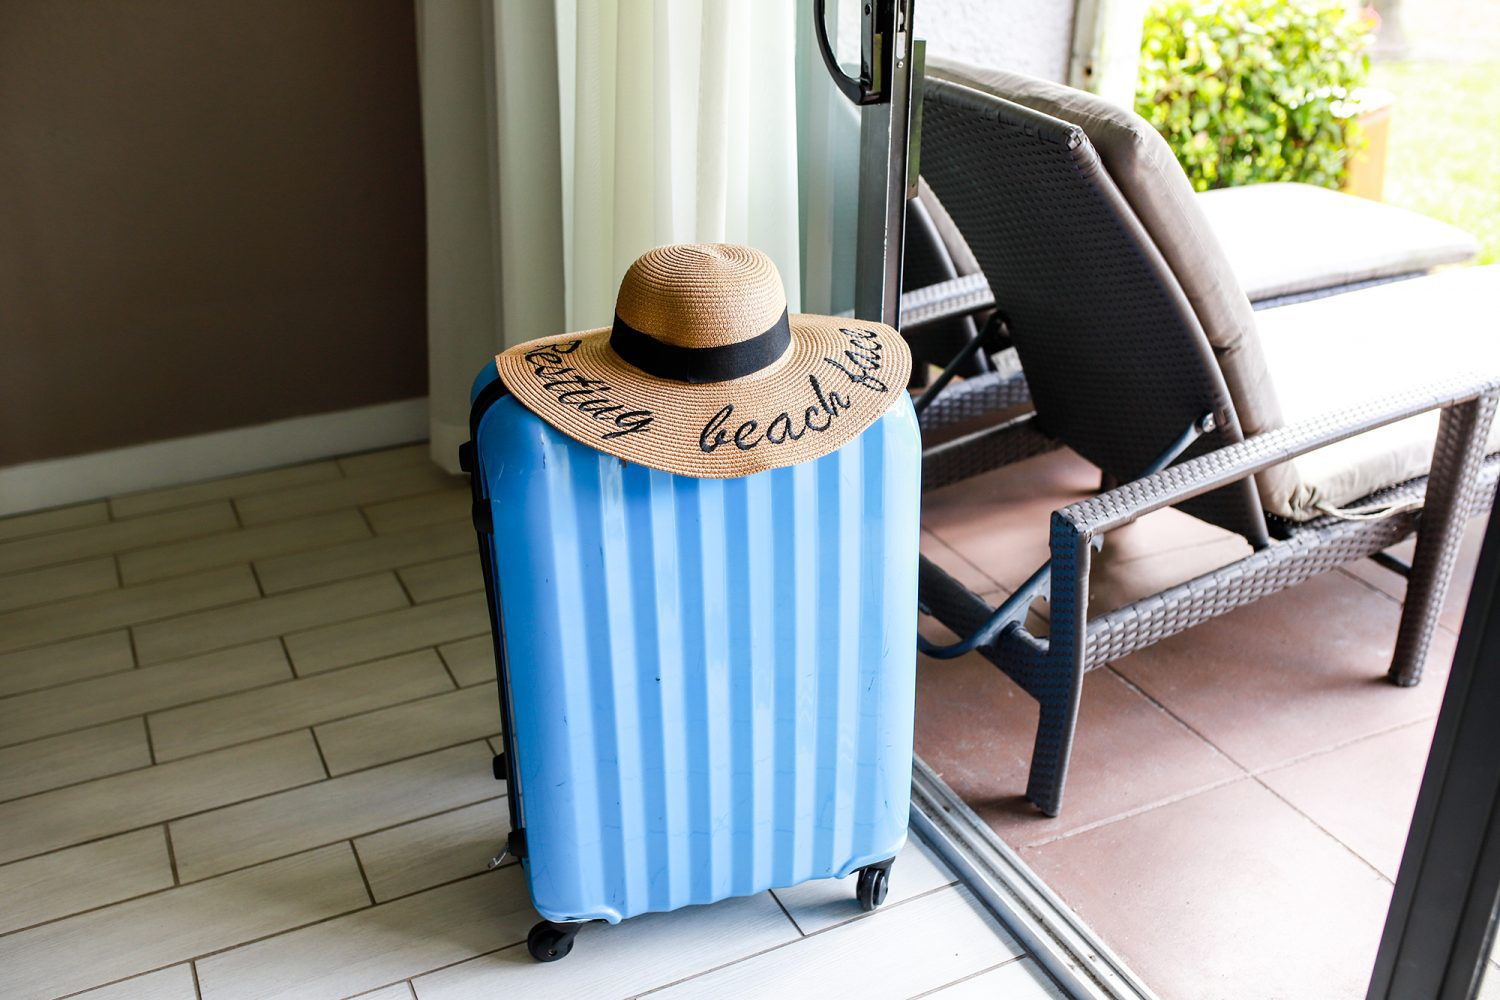 suitcase with a beach hat on top